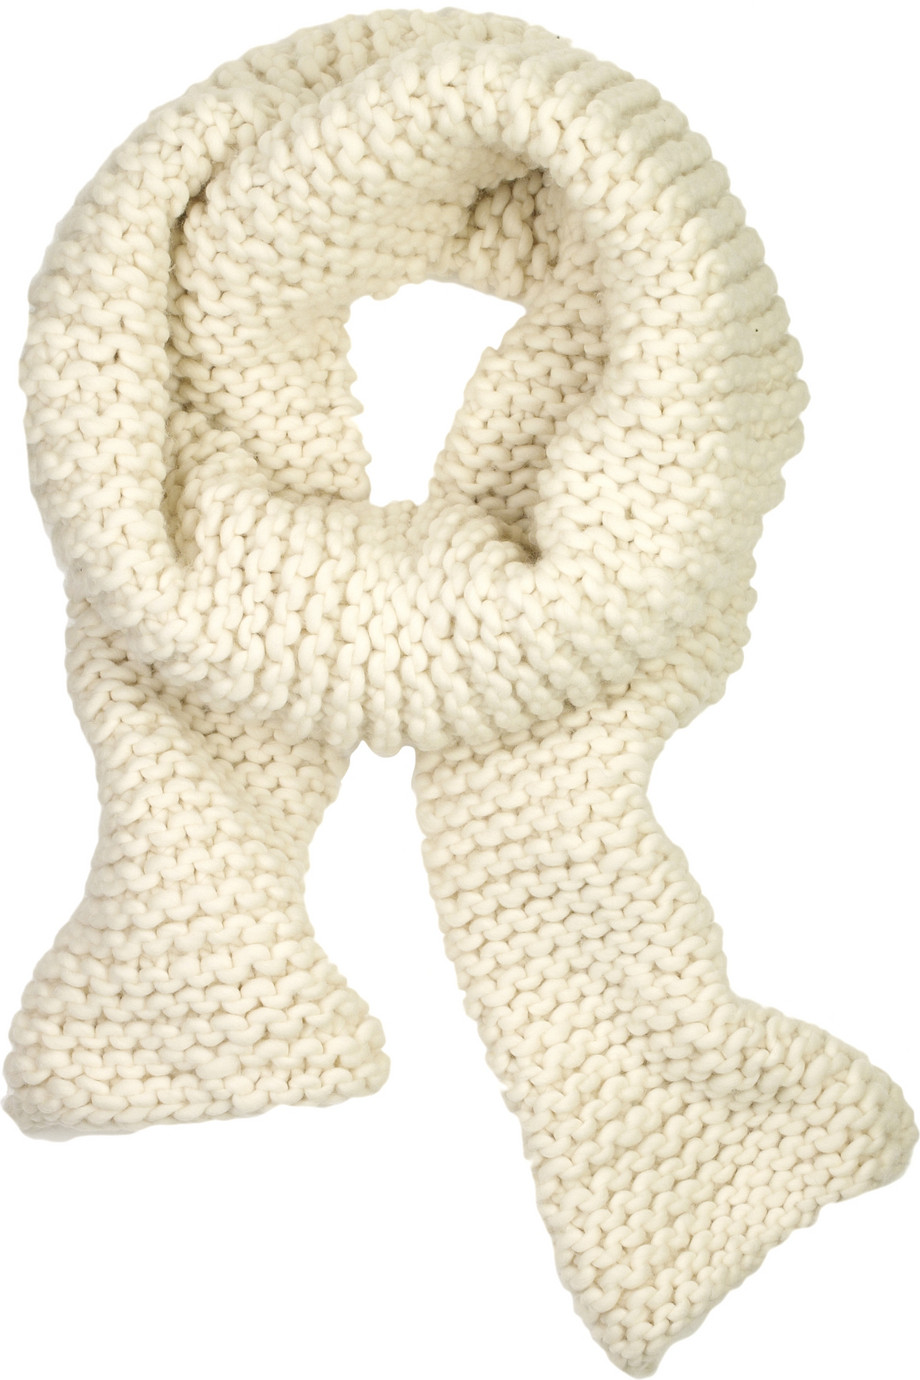 wool-scarf. Best 10 Ideas for Choosing Winter Gifts